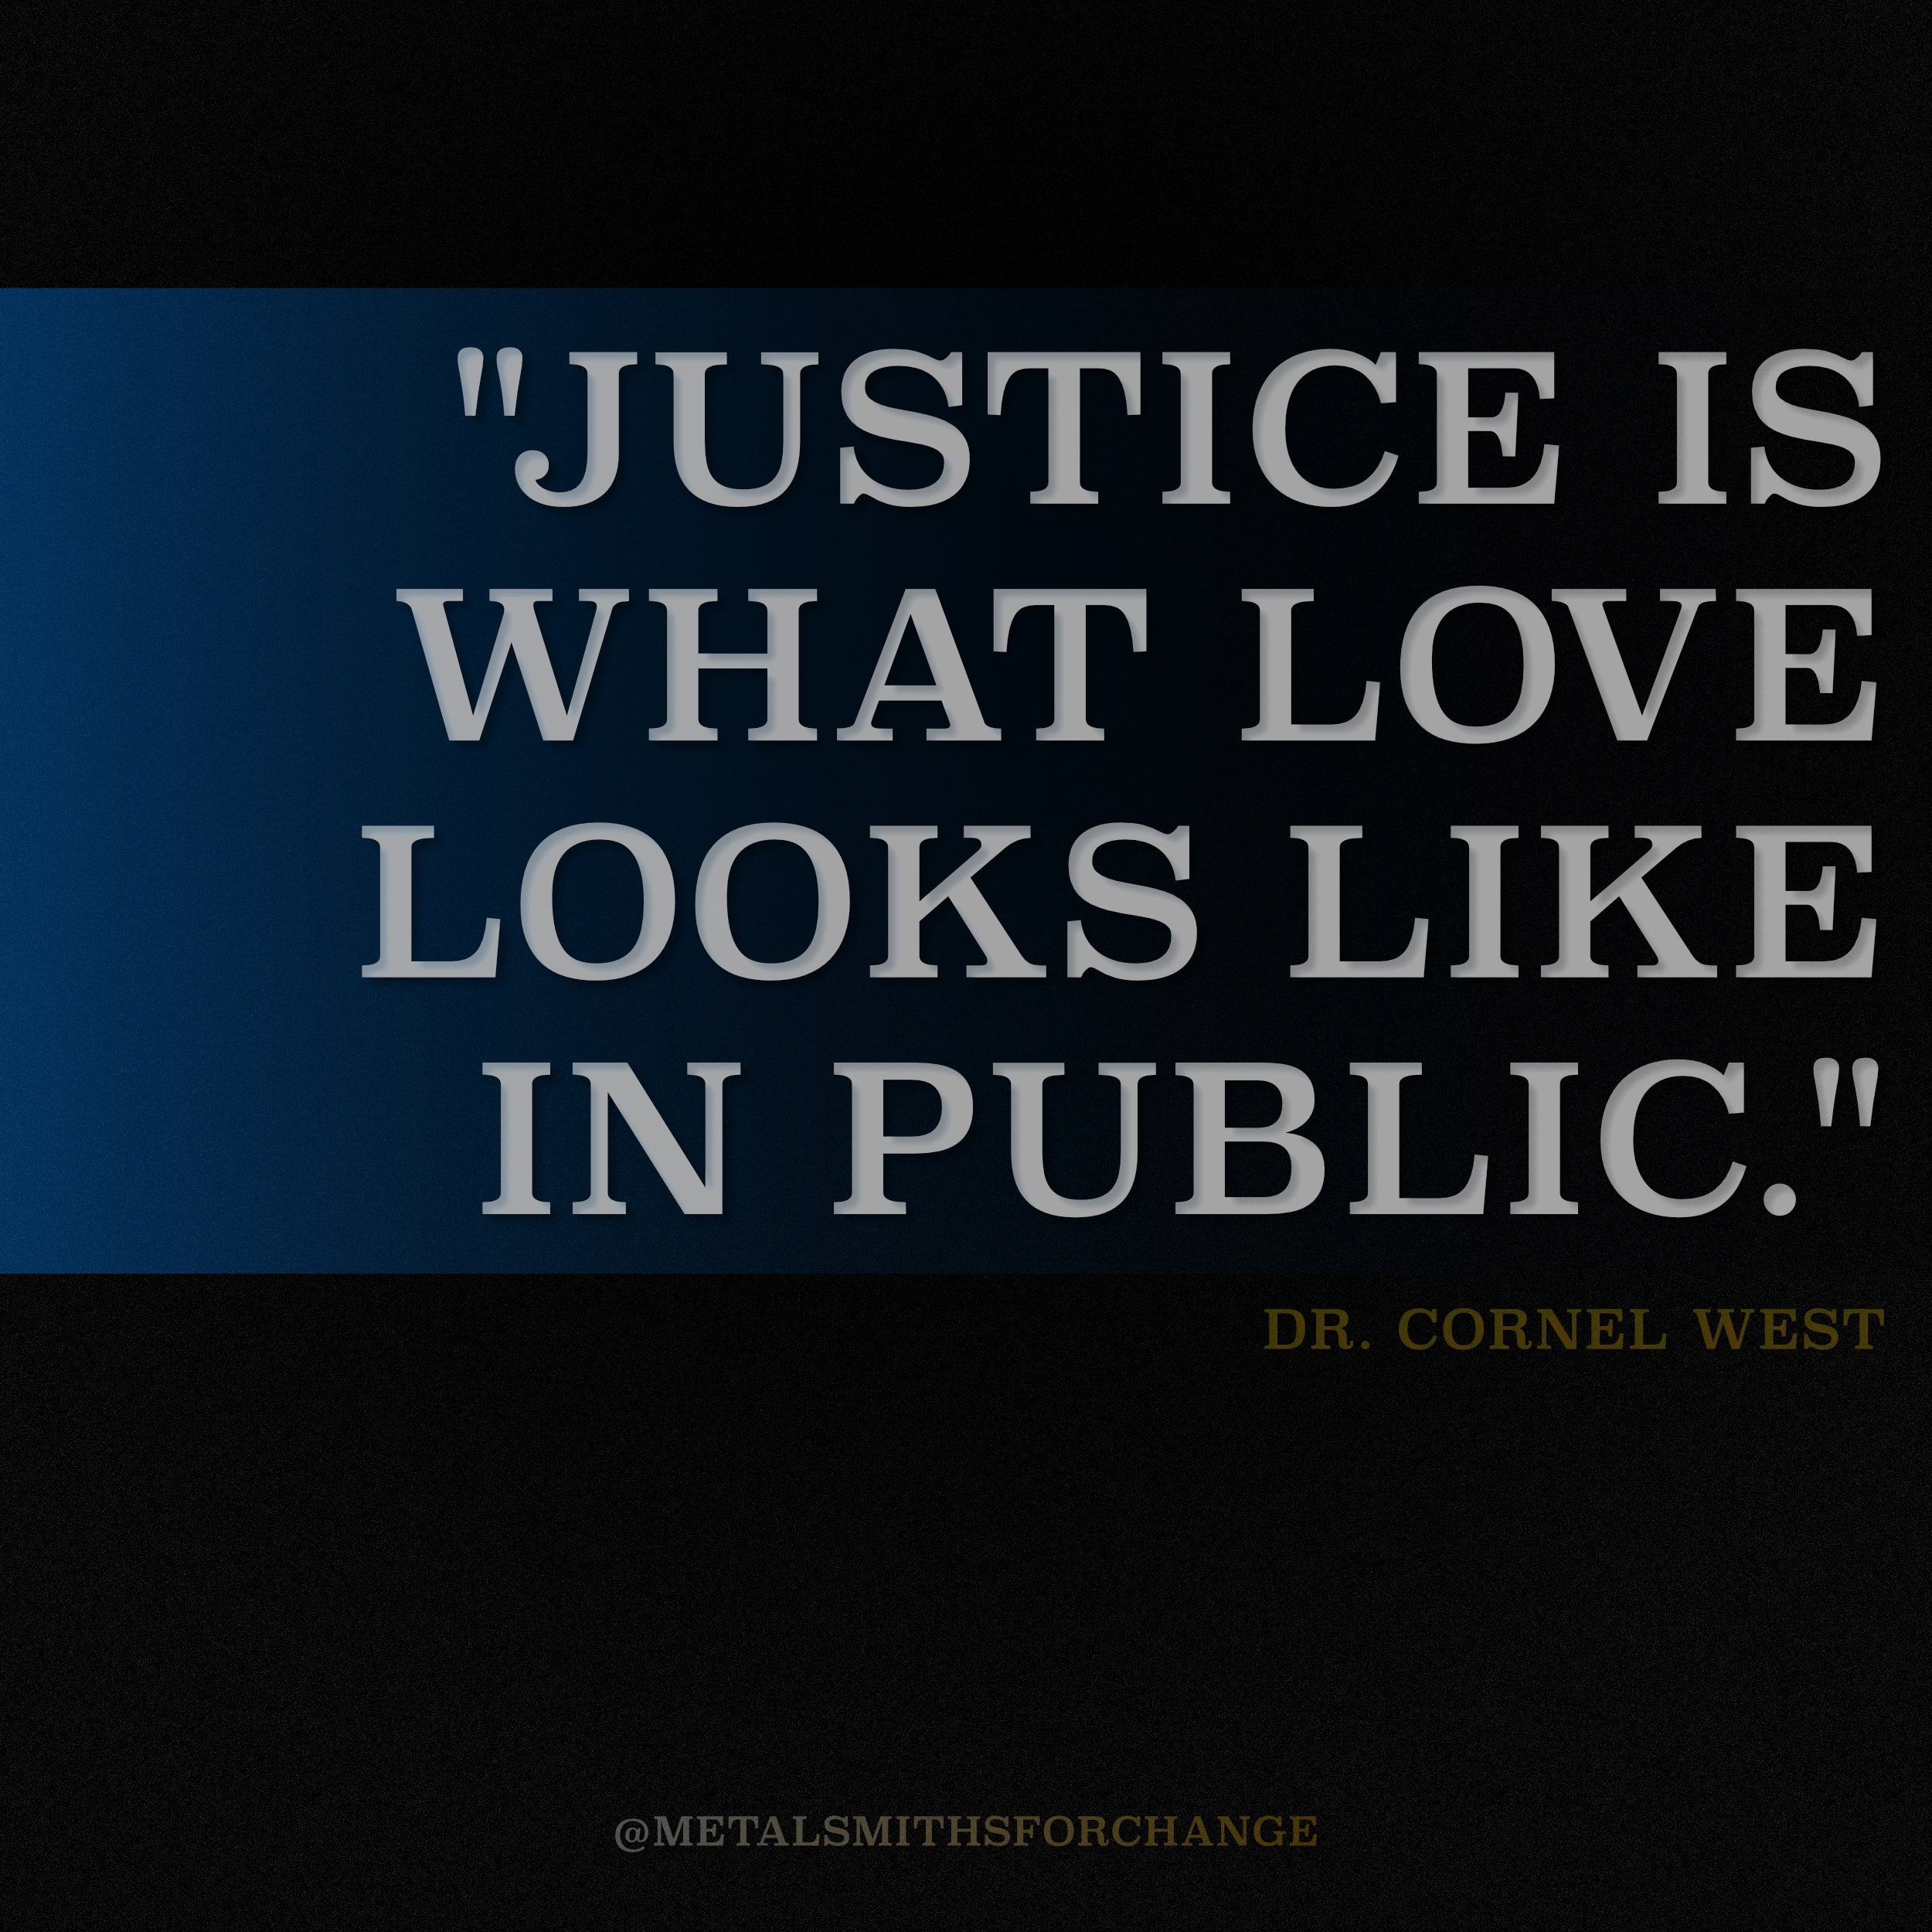 """Justice is what loves looks like in public."" - Cornel West"